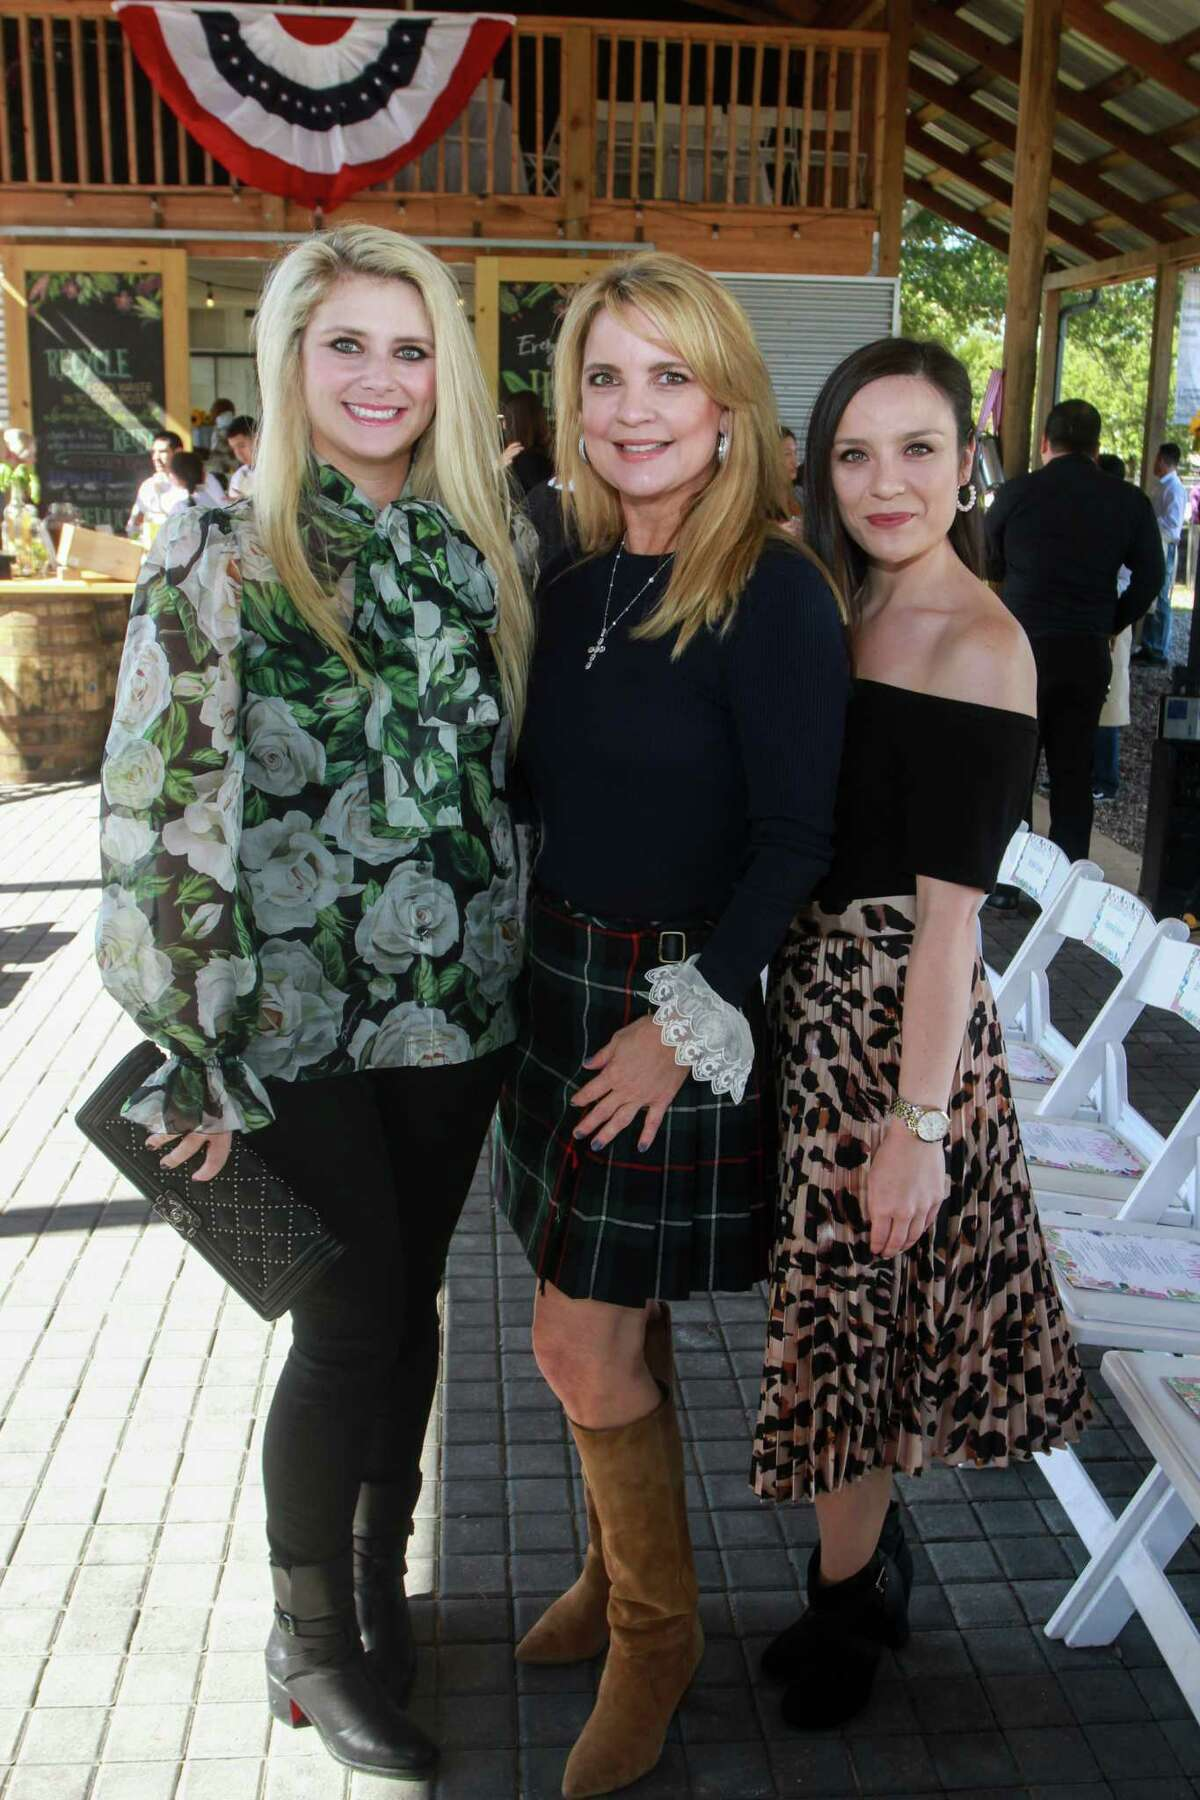 Christine Falgout Gutknecht, from left, Melissa Juneau and Jordan Holman at Recipe for Success Houston's Fashion in the Fields